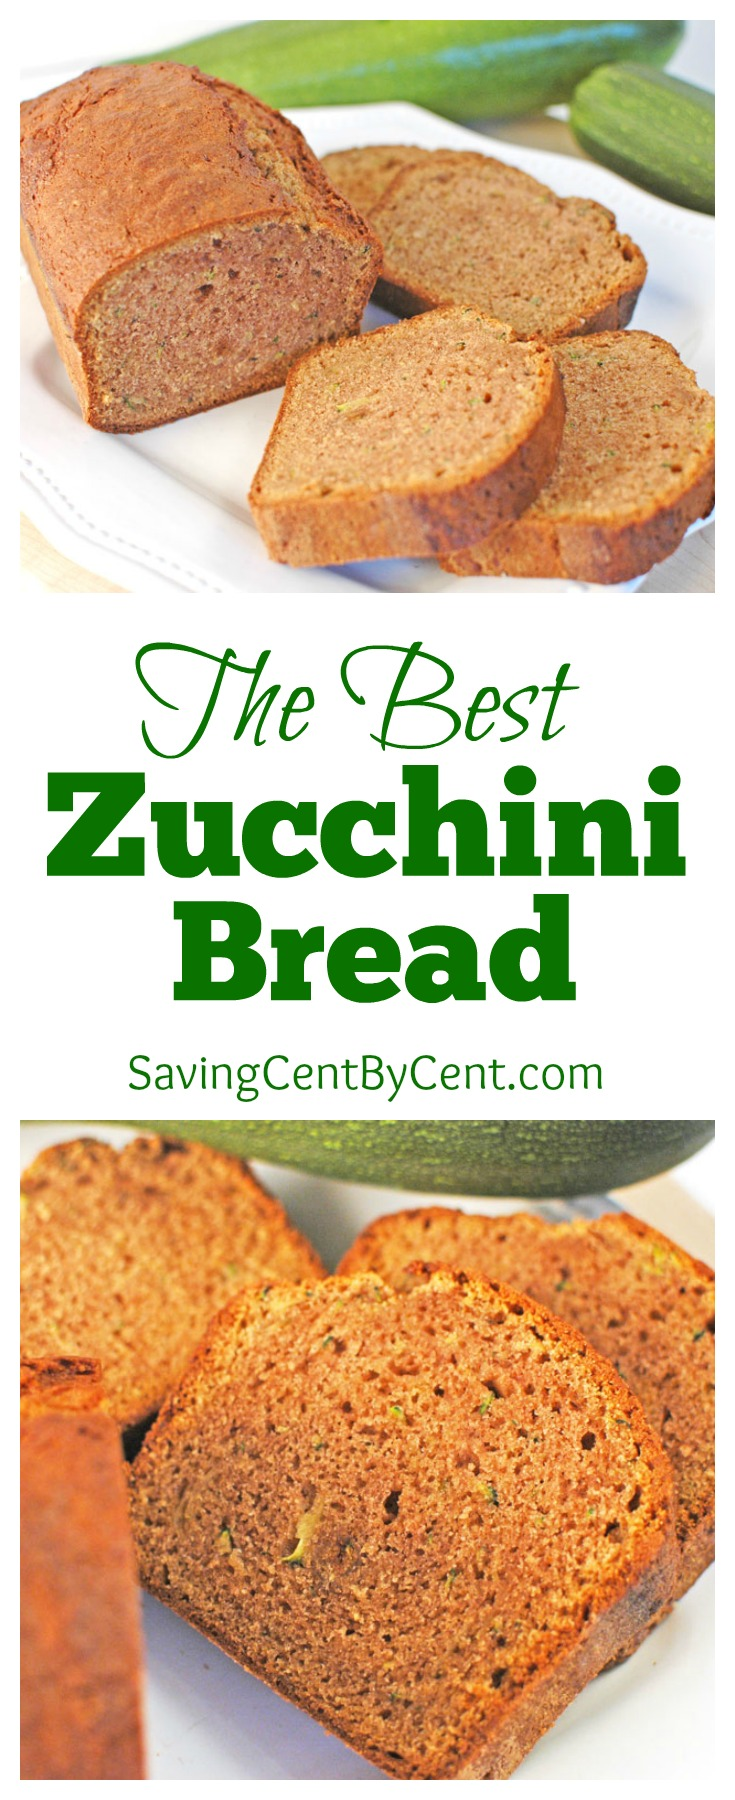 The Best Zucchini Bread